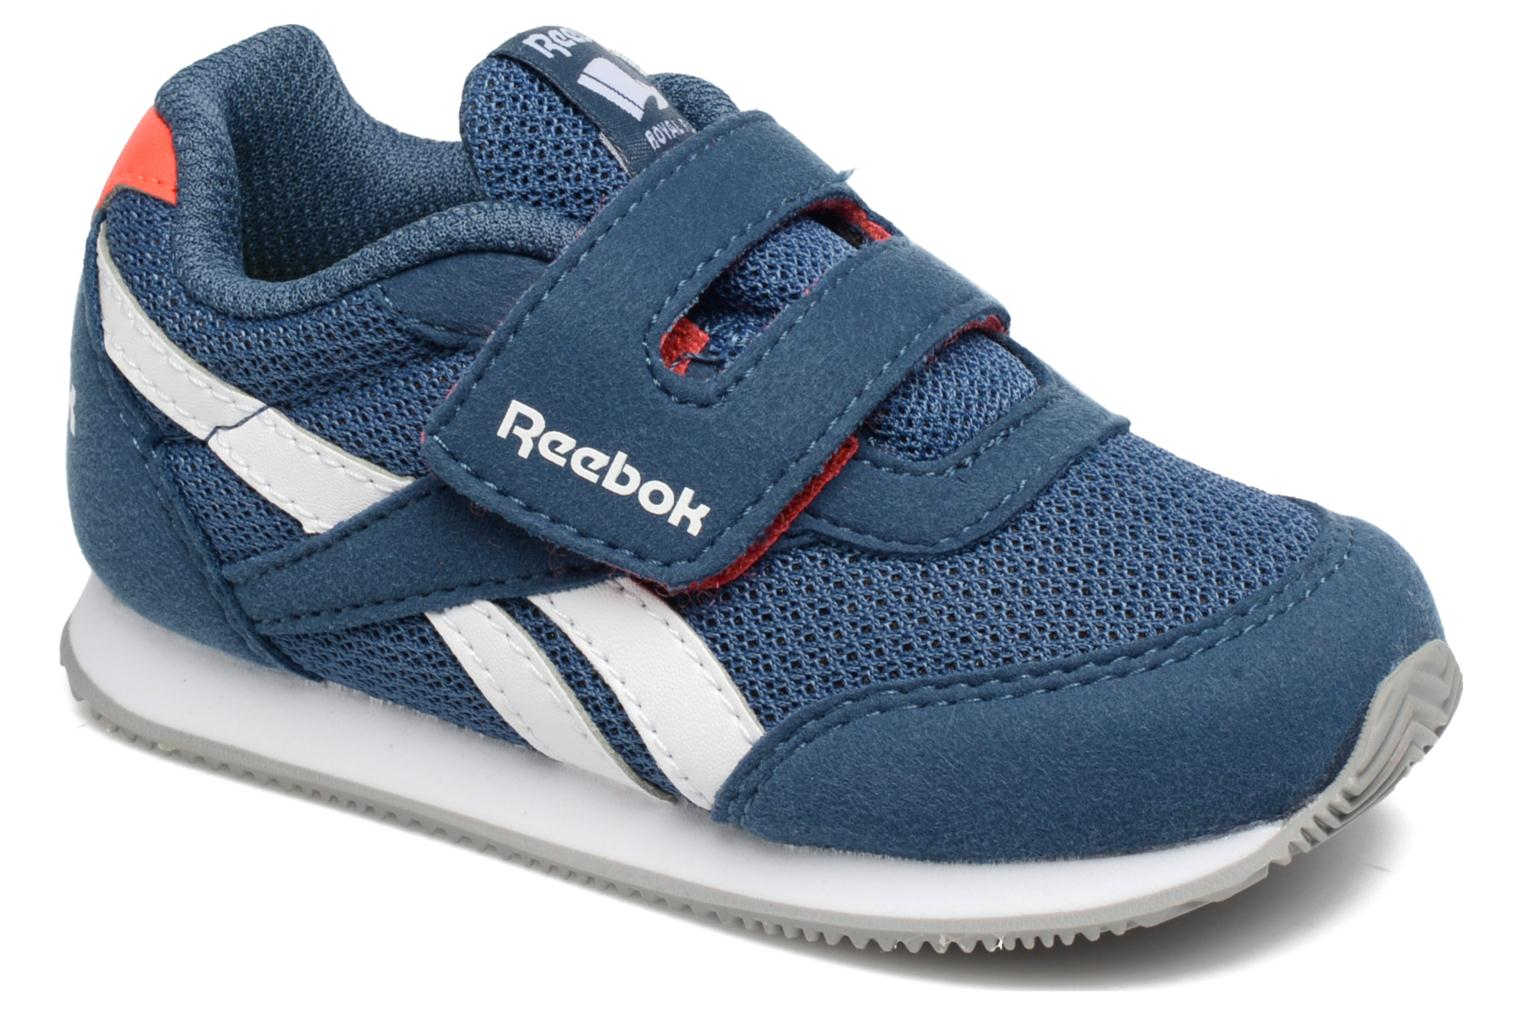 Reebok Royal Cljog 2Rs Kc Brave Blue/Carotene/White